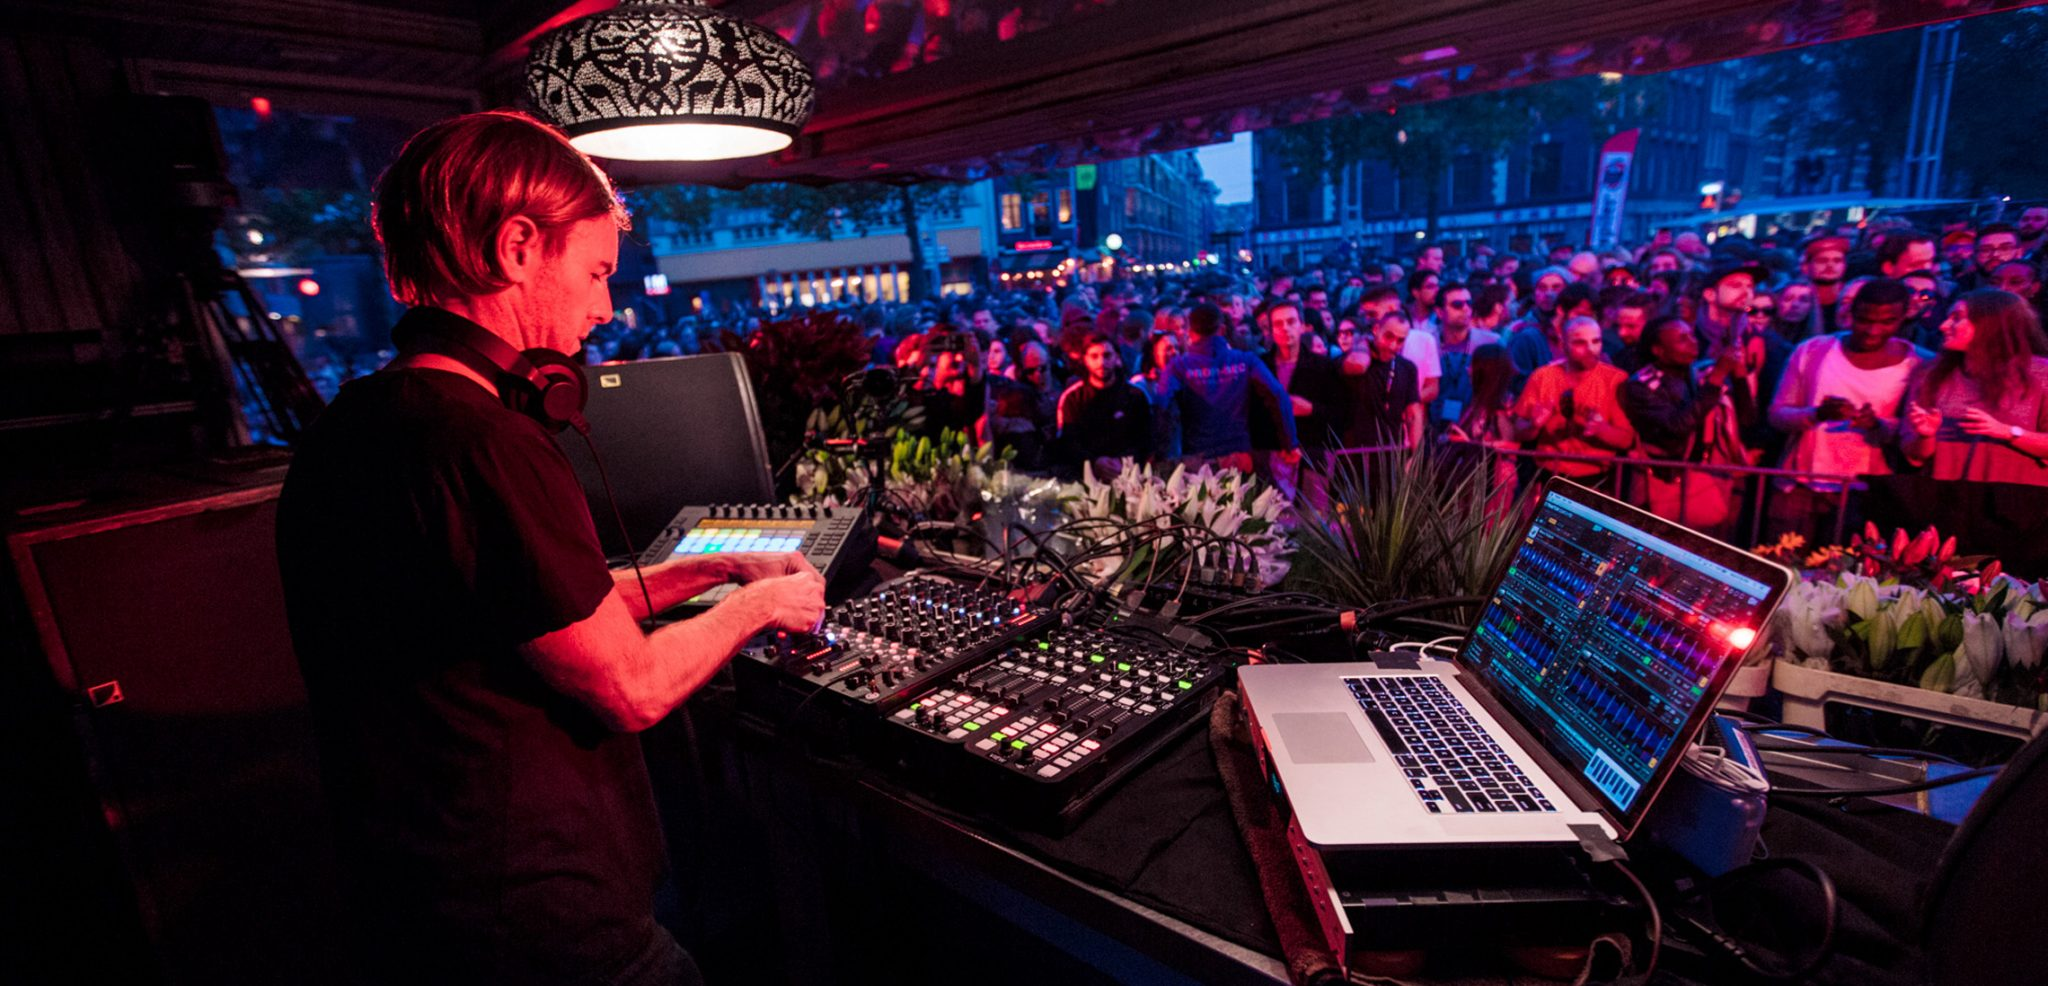 Amsterdam Dance Event Attracts a Record Number of 395,000 Visitors